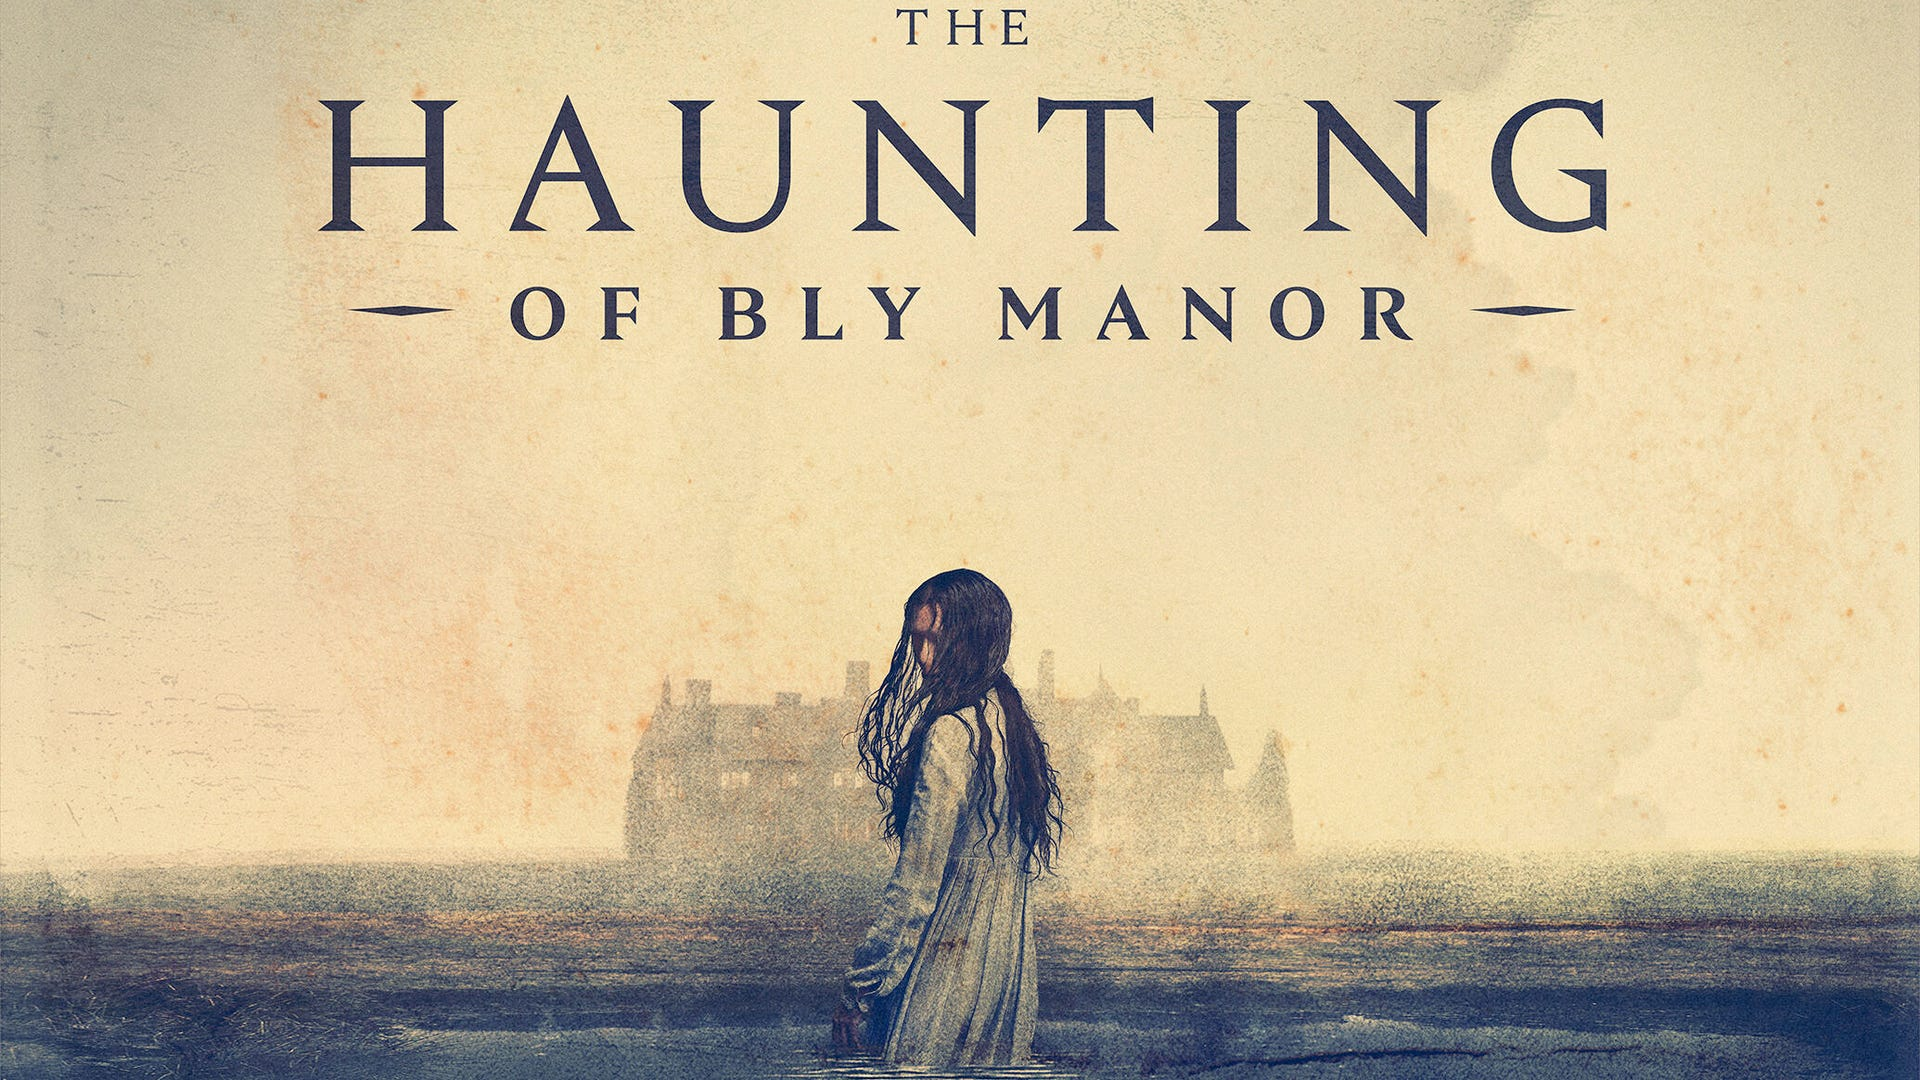 The Haunting of Bly Manor, Netflix